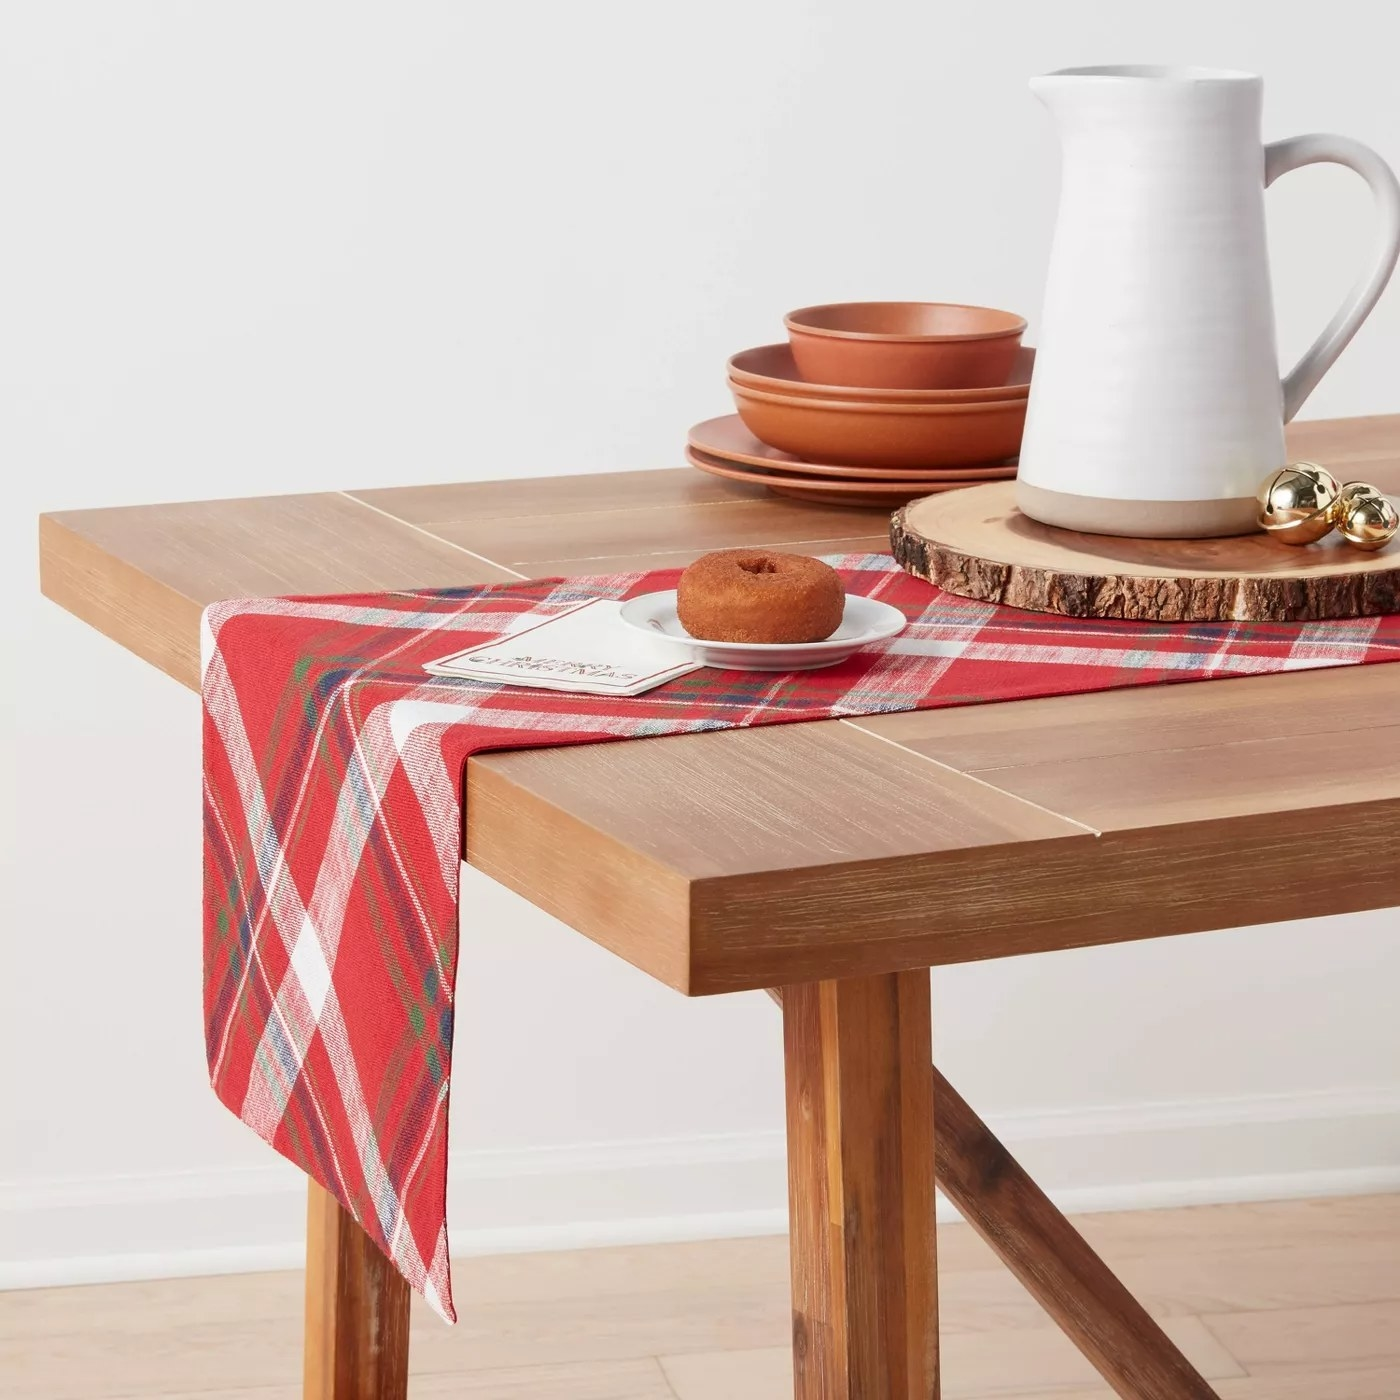 The red, white, and green table runner